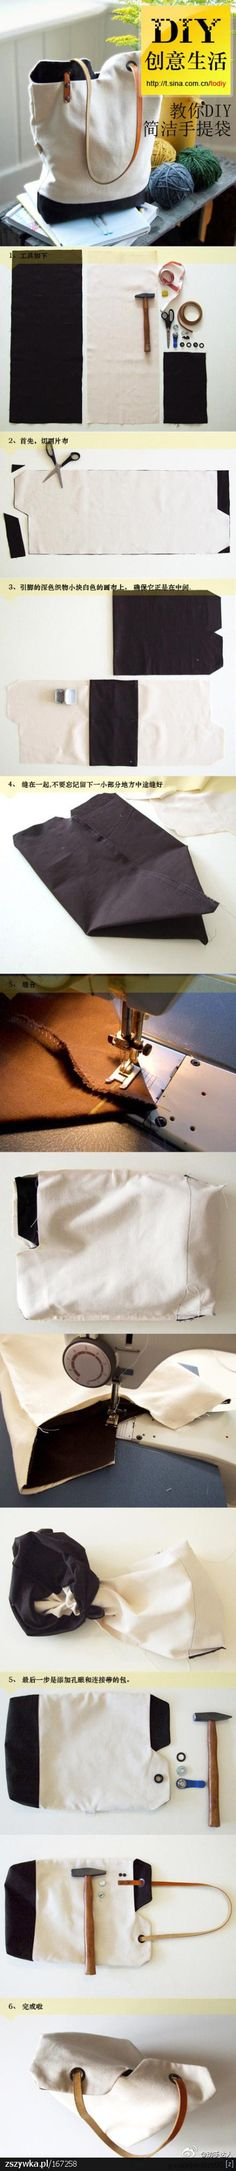 DIY shopping bag